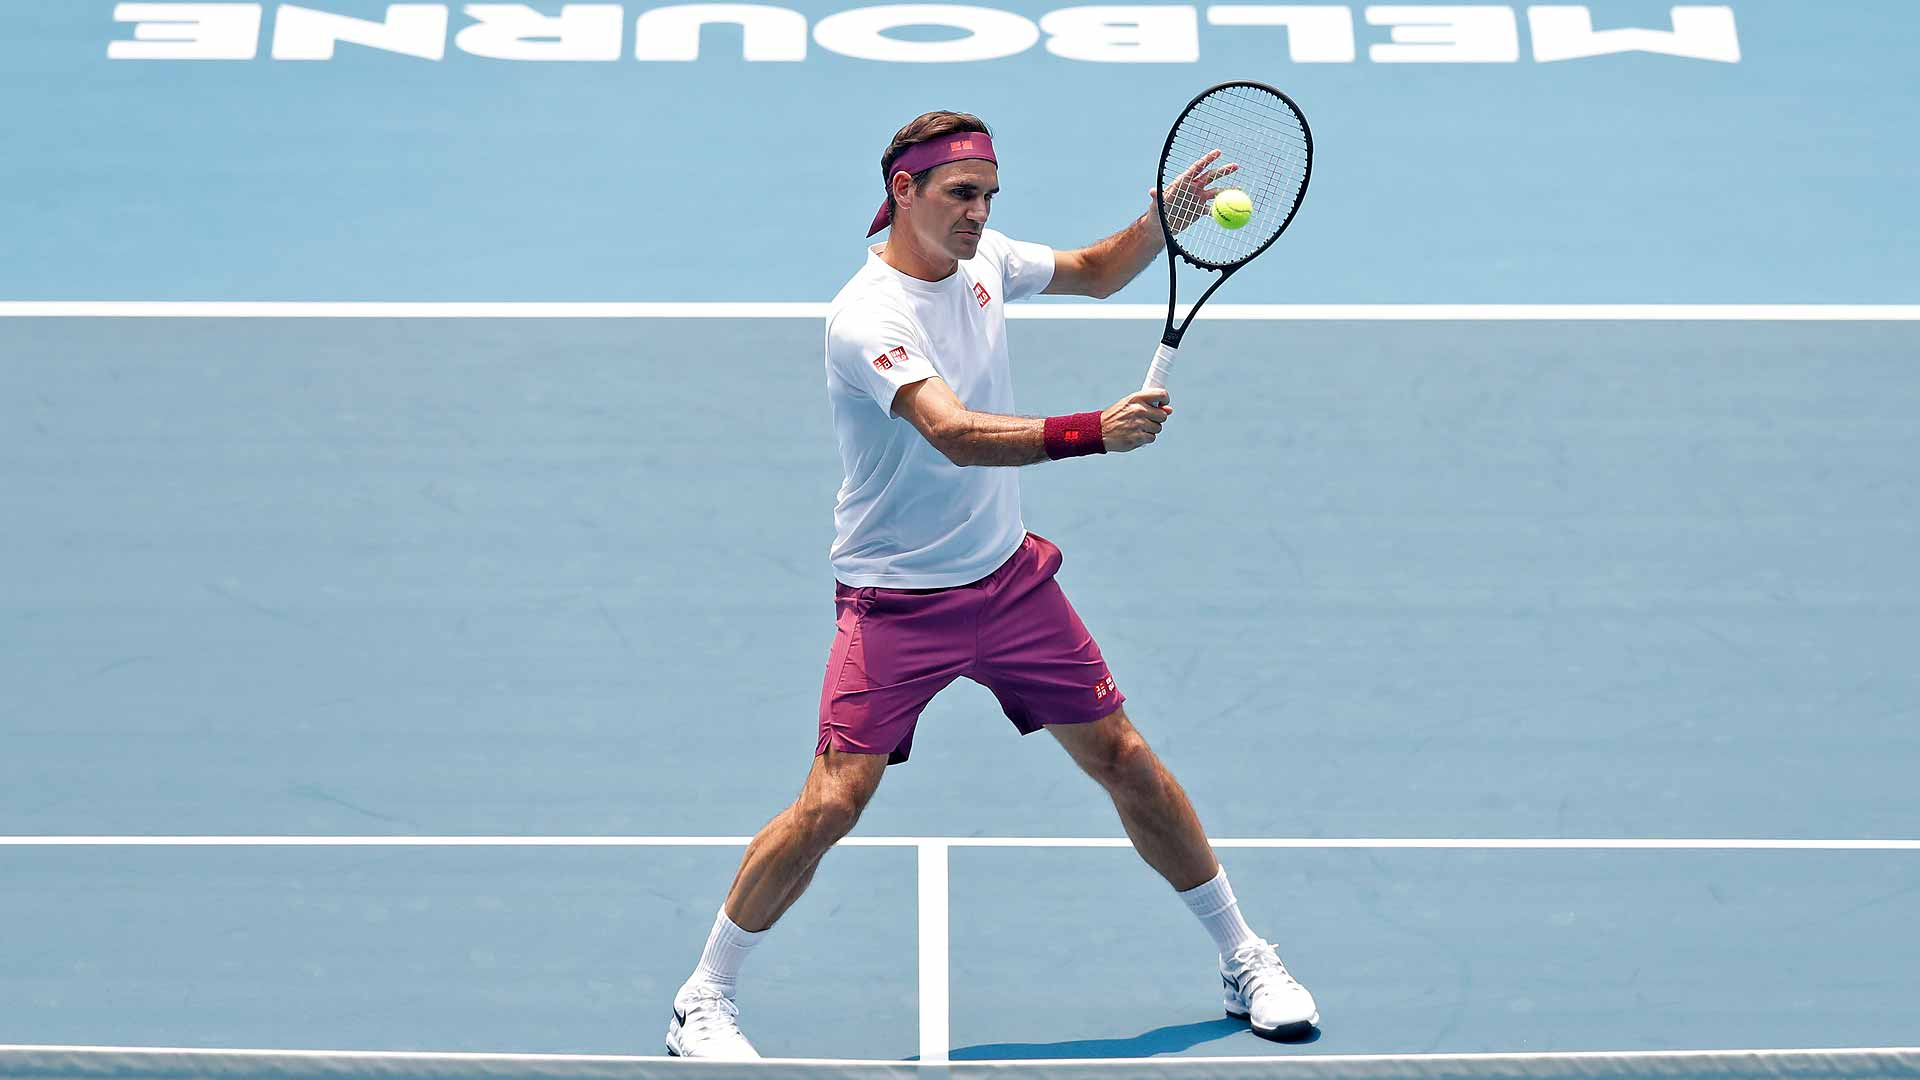 Roger Federer Prepared For 'Tricky Situation' To Start 2020 Australian Open - ATP Tour